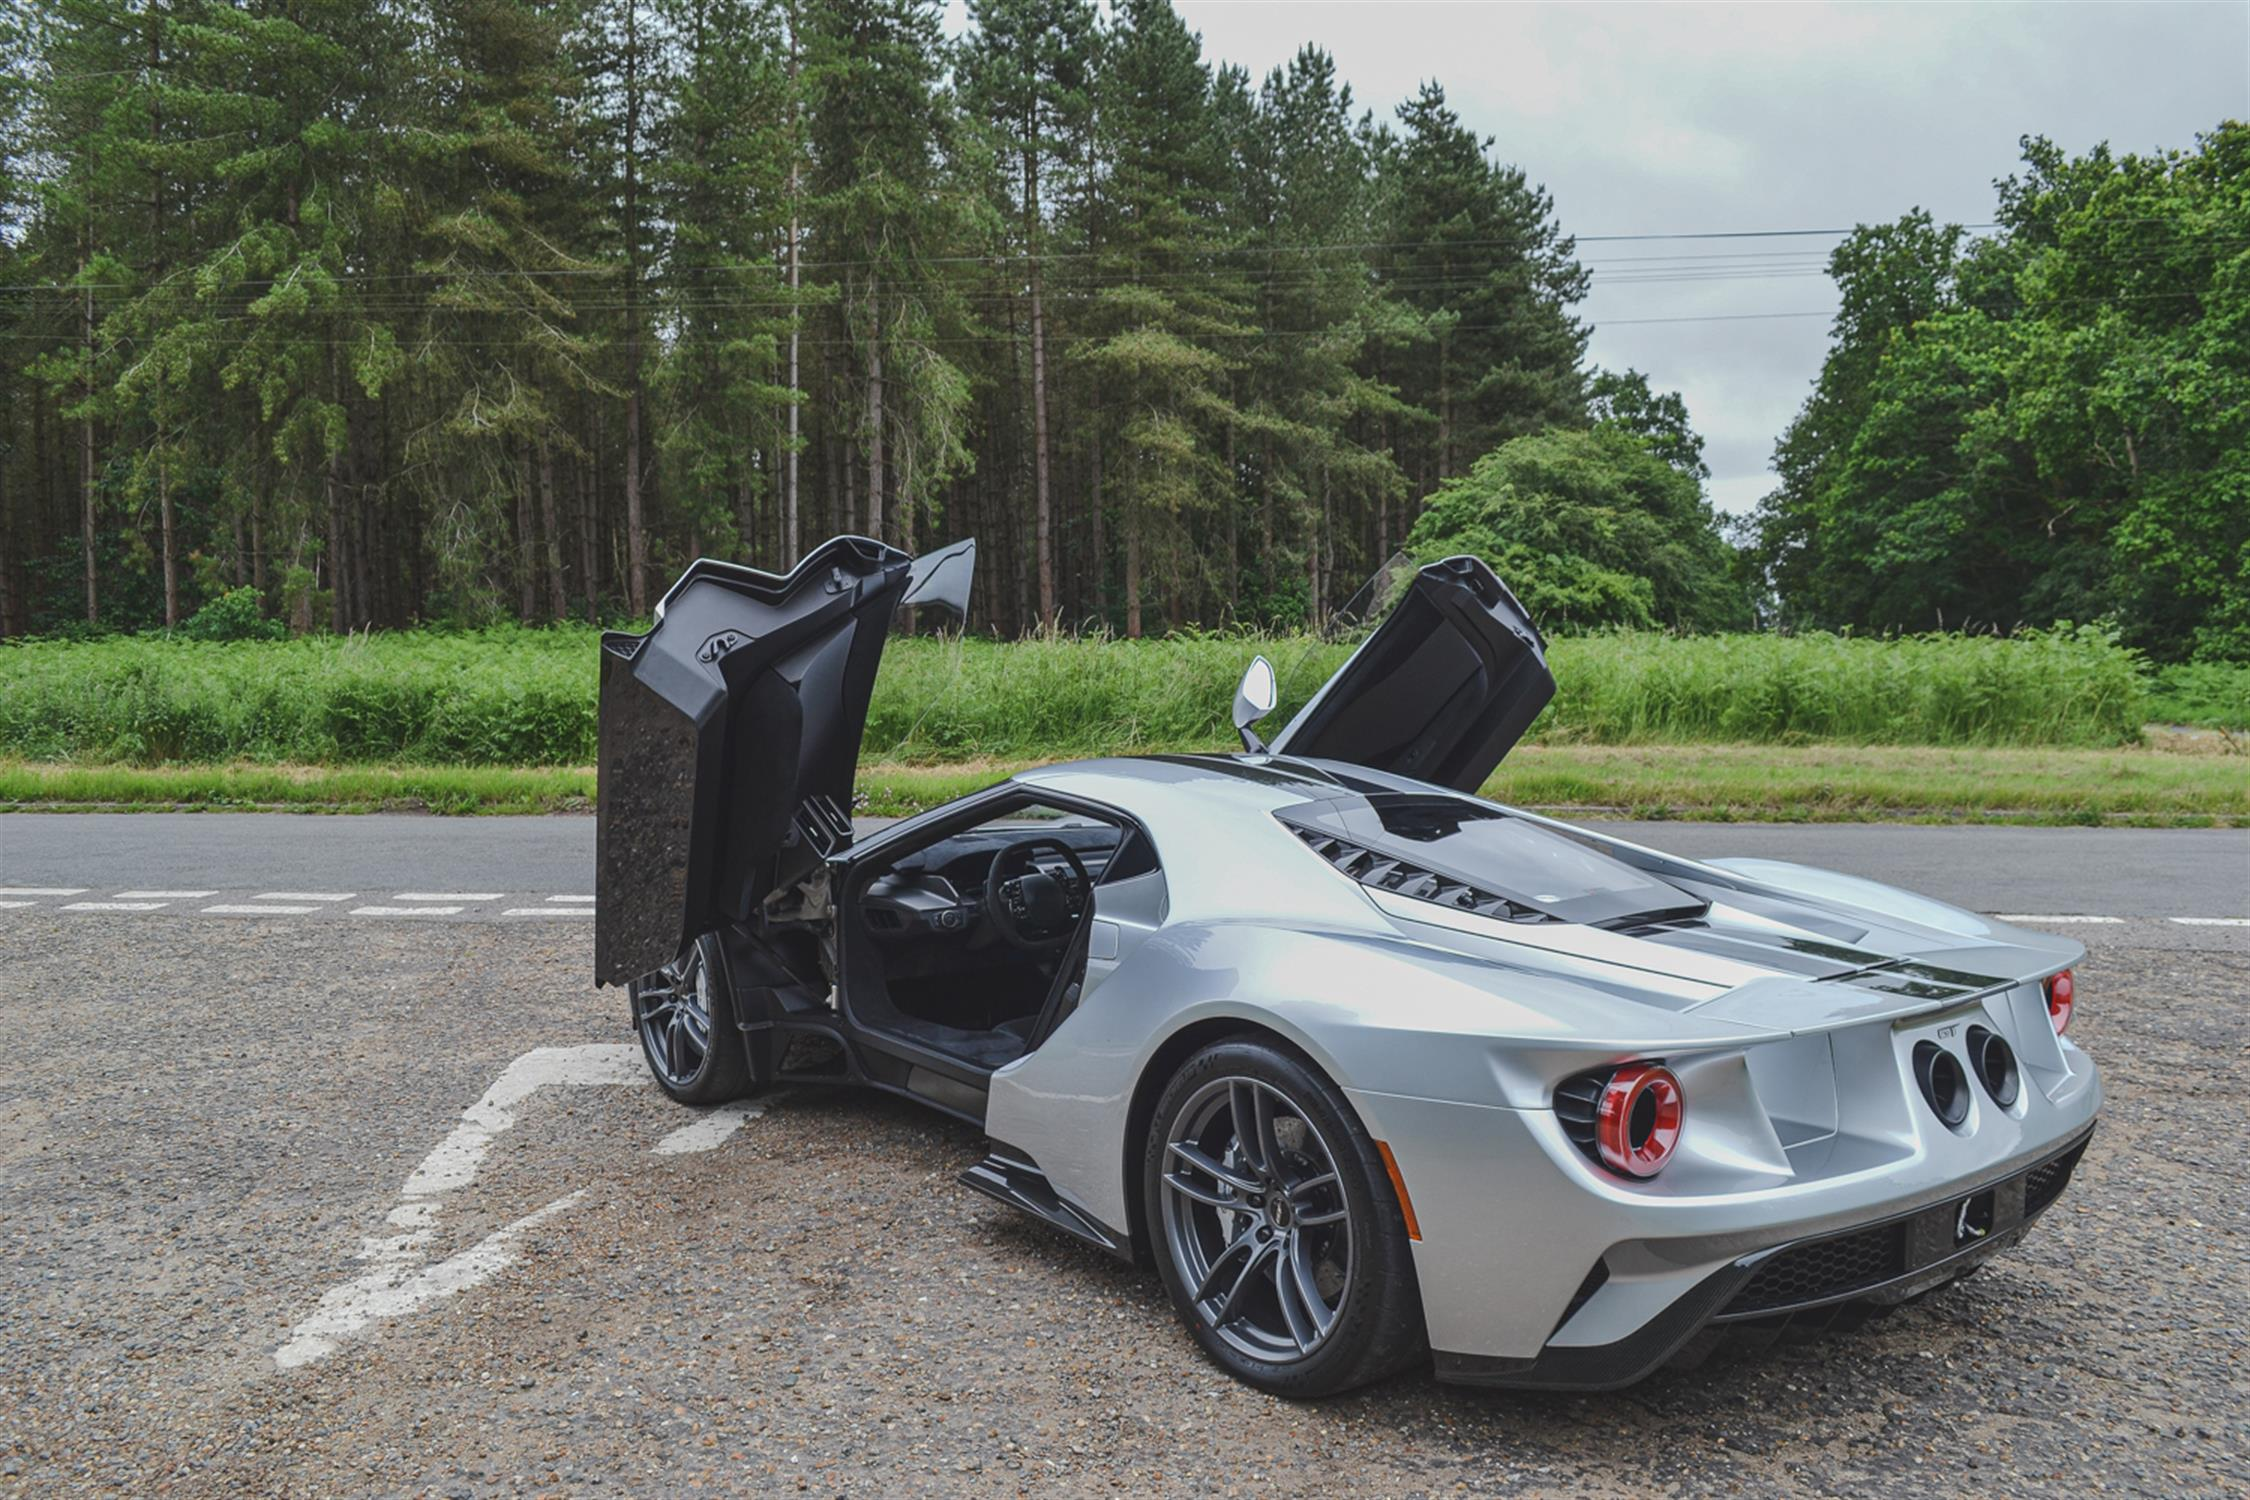 2018 Ford GT - Image 7 of 20